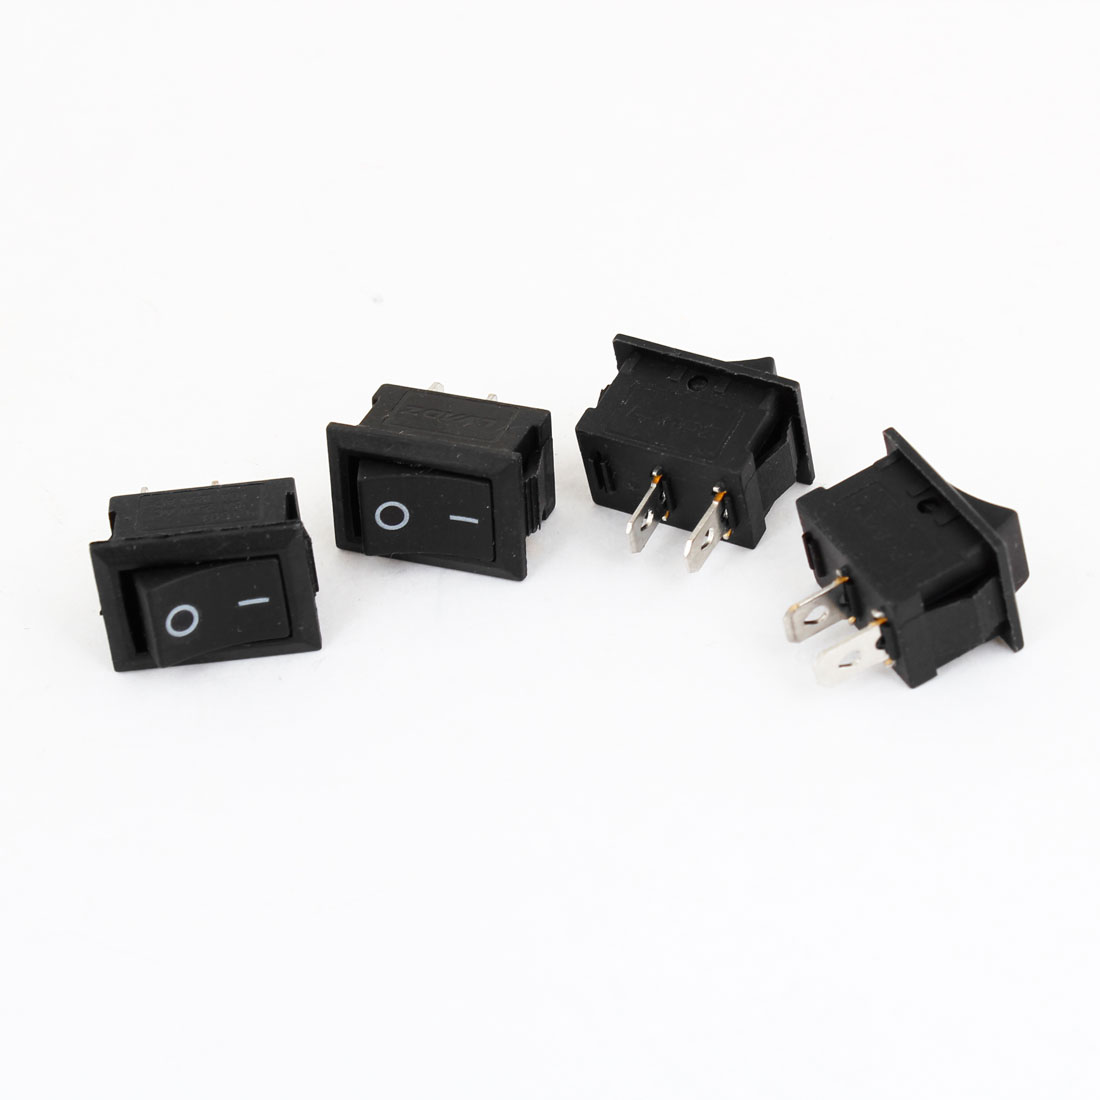 4 pcs 2 Position AC 6A/250V 10A/125V Boat Rocker Switch for Car